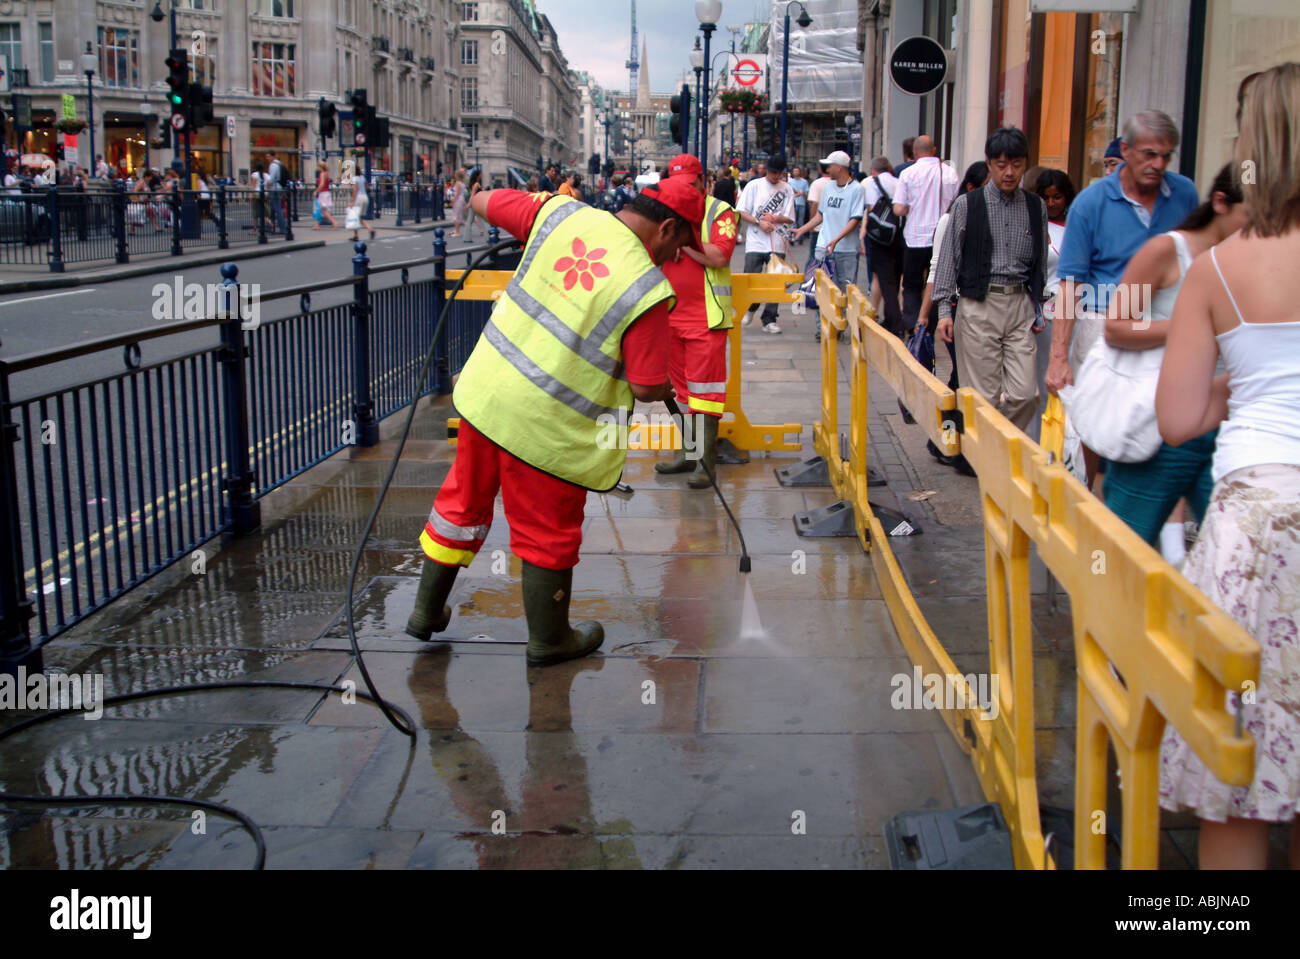 CITY COUNCIL WORKERS WASHING UP THE STREET WITH COMPRESSED WATER LONDON 2005 - Stock Image